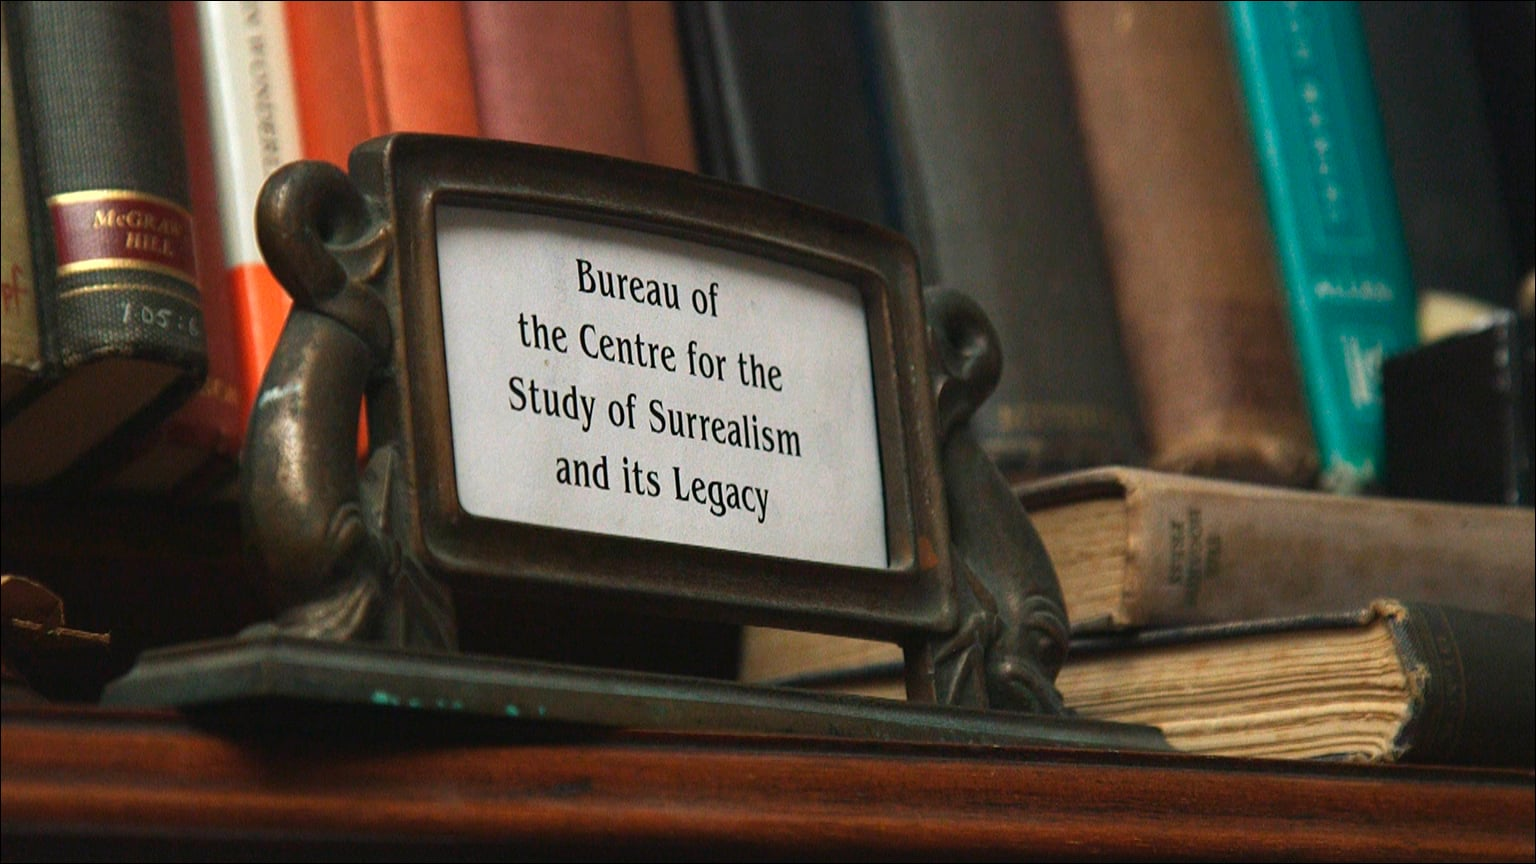 The Bureau of the Centre for the Study of Surrealism and Its Legacy